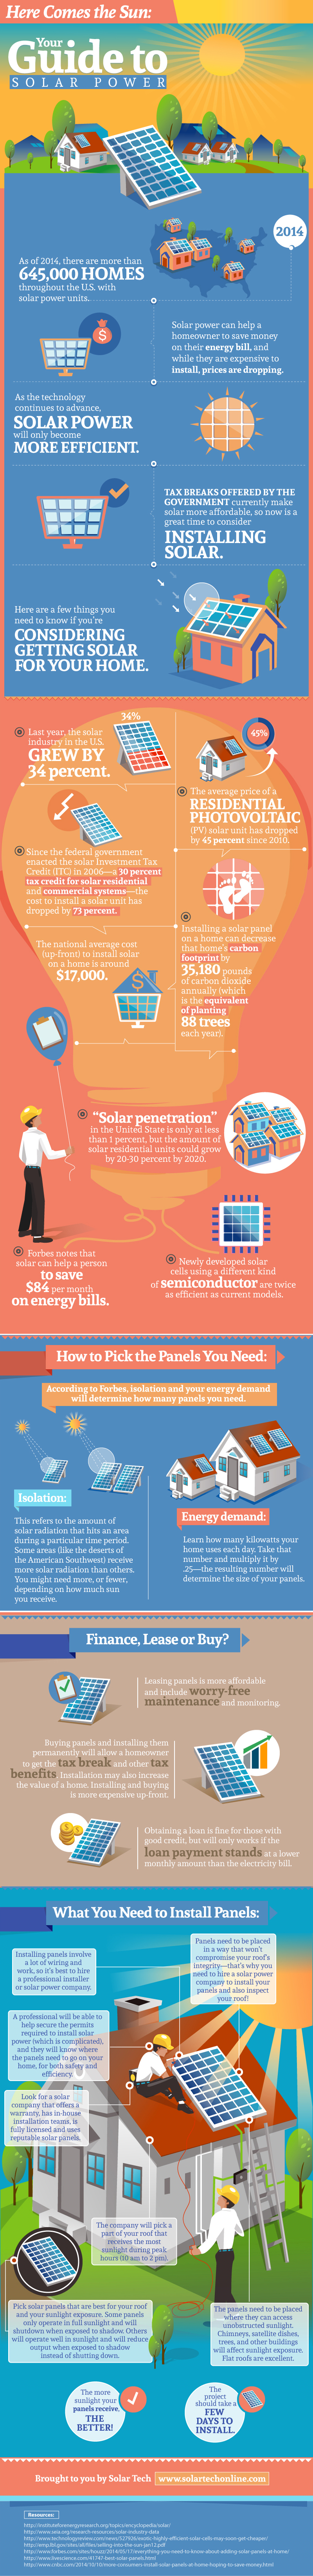 Here Comes the Sun: Your Guide to Solar Power